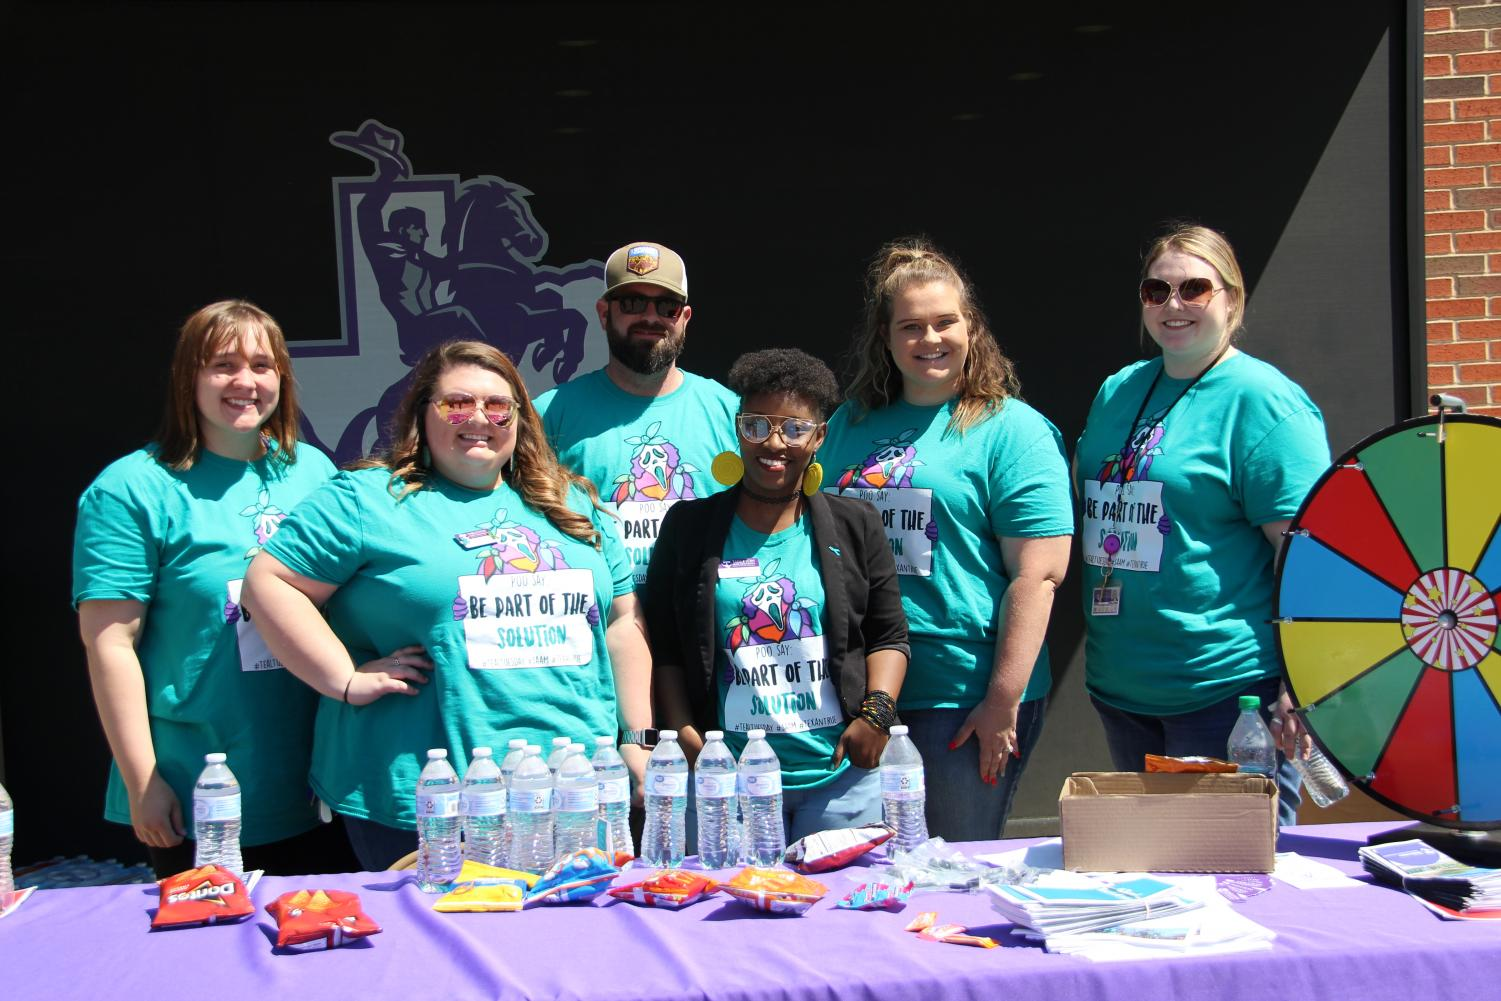 Tarleton counseling services has a table at the Sexual Assualt Aweness Month kickoff event.